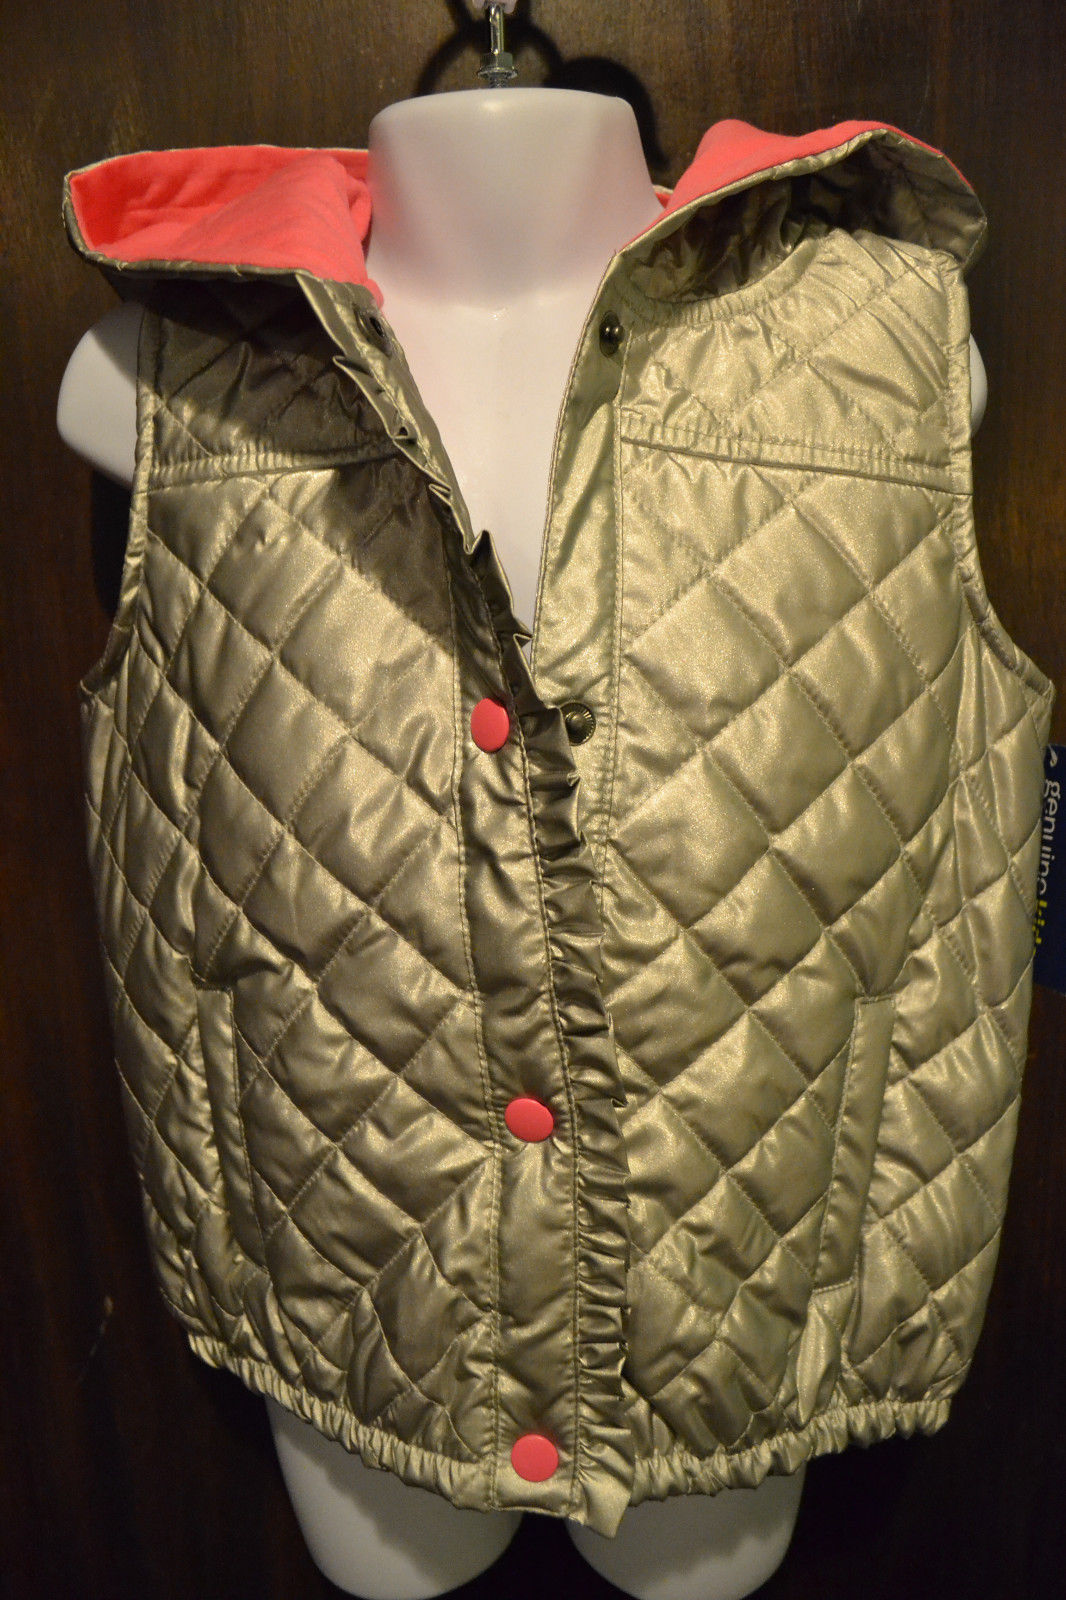 NWT Genuine Kids By Osh Kosh Girls Fur Vest 12m-18m